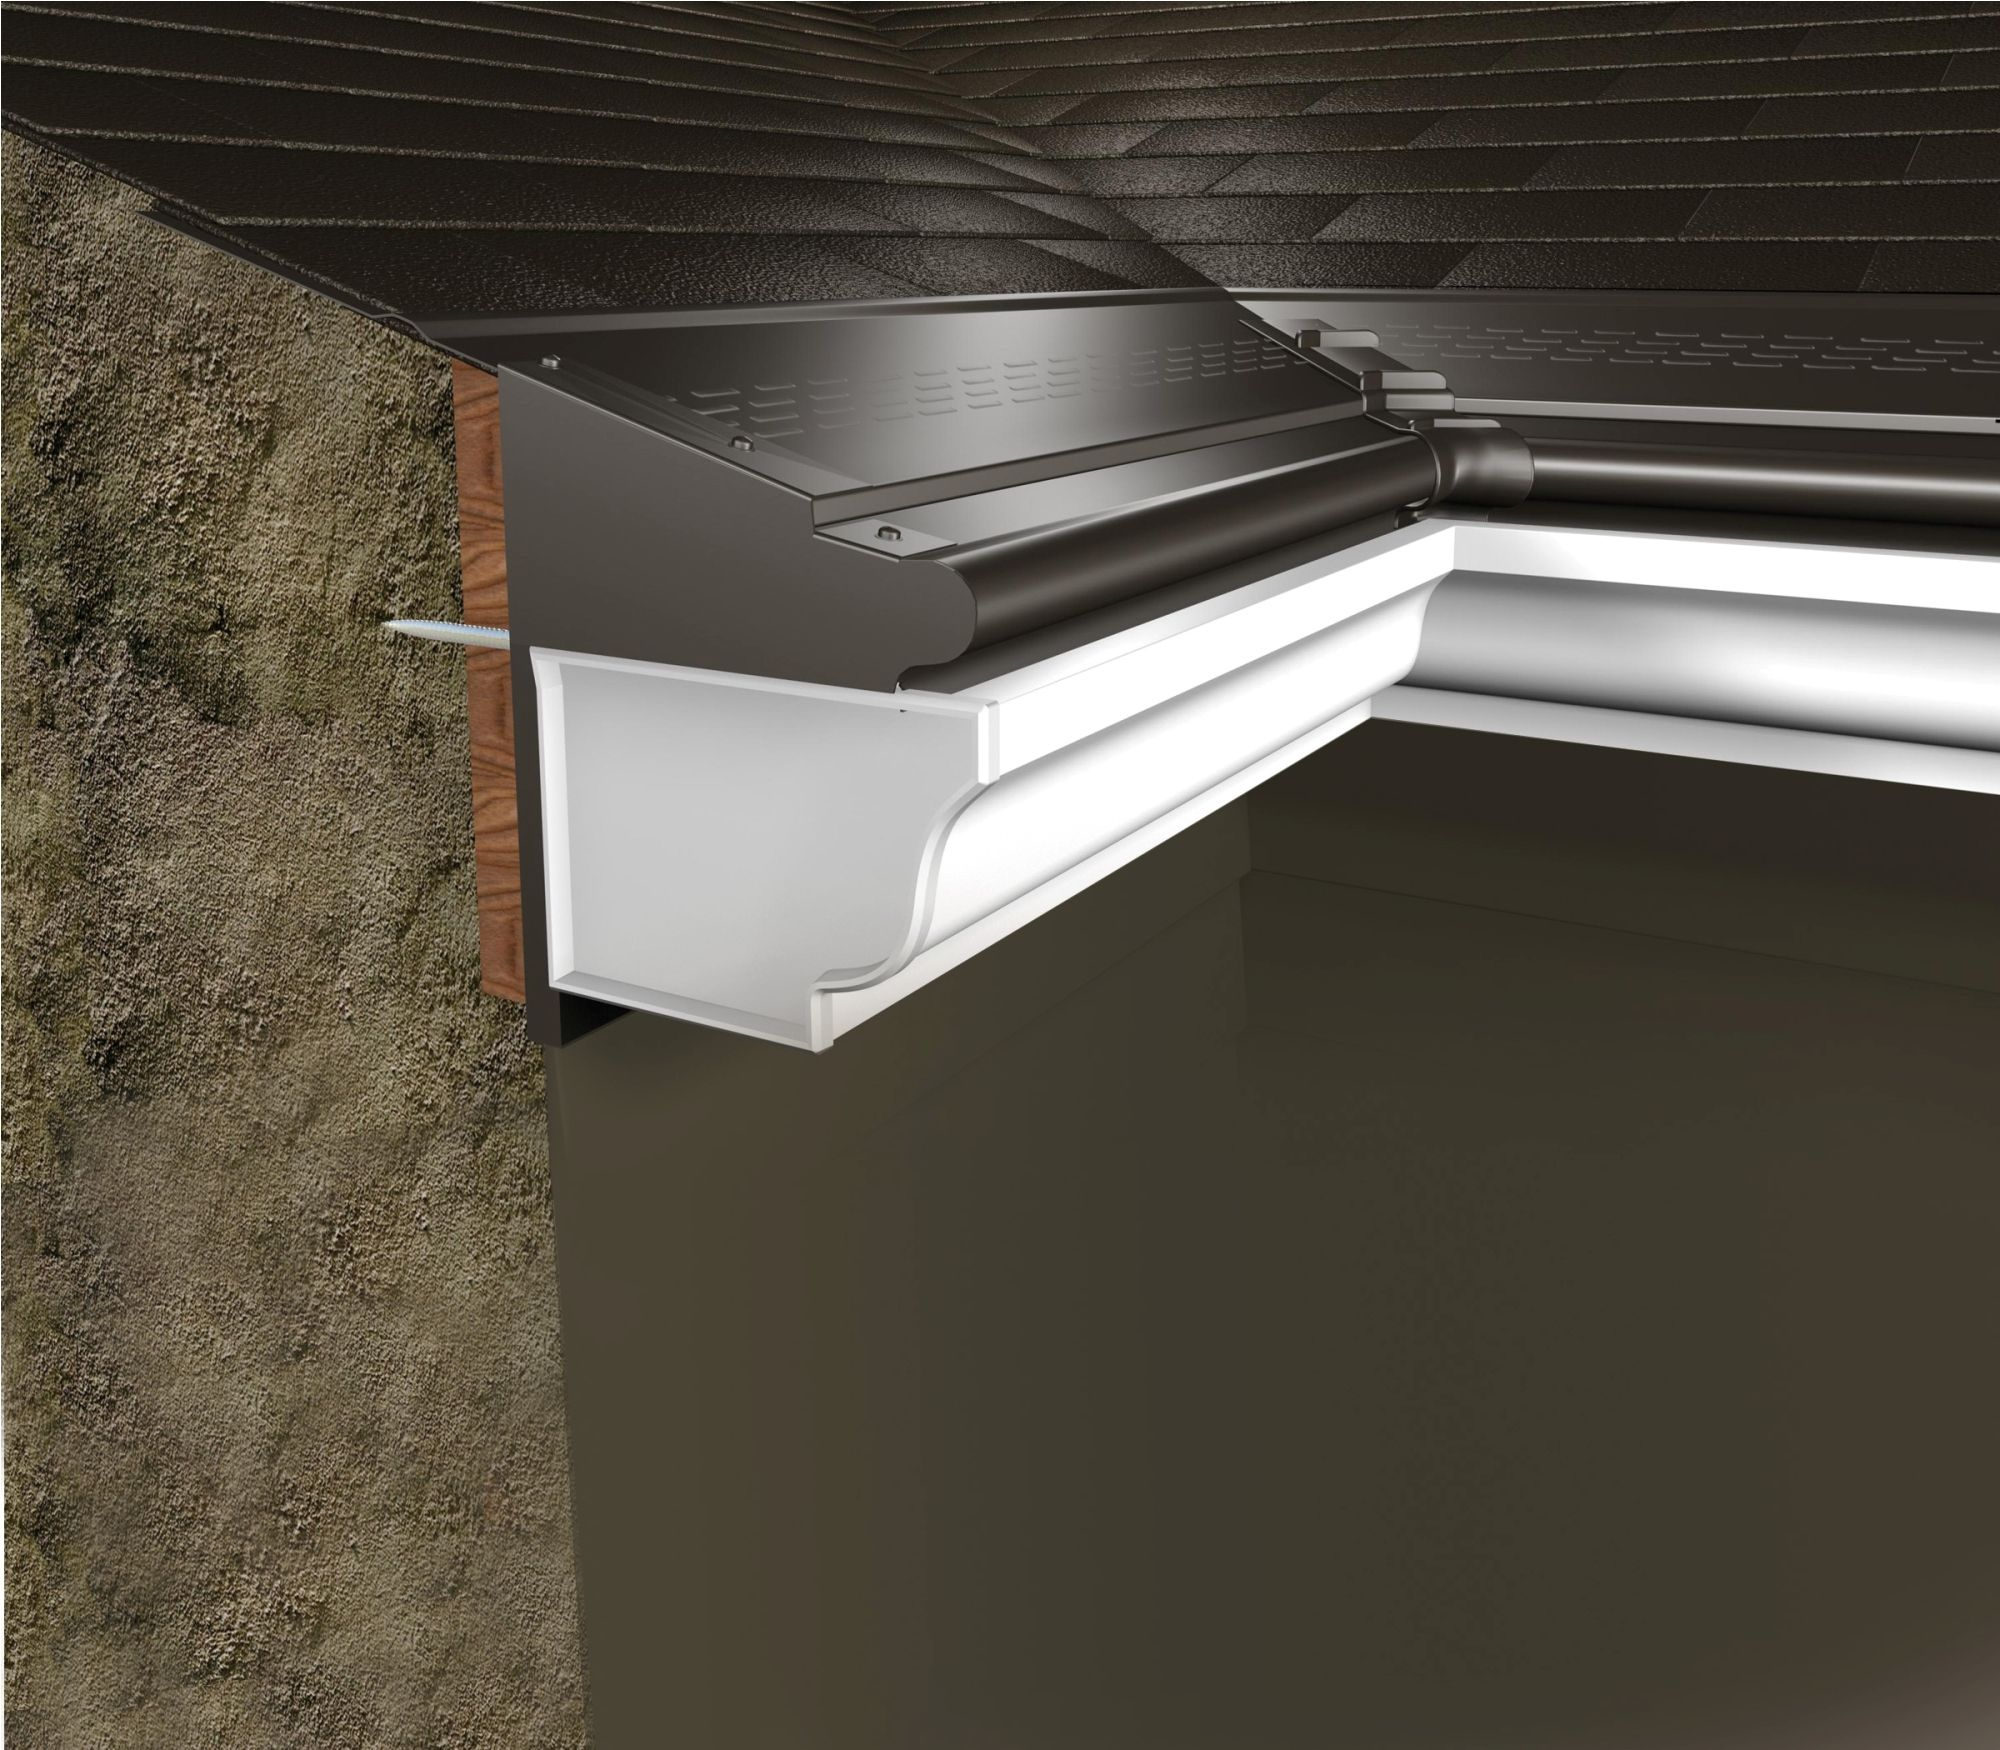 Interior Gutter Protection To Illustrate The Installation Of The New Building Shape That Fits With A Matchin Gutter Protection Gutter House And Home Magazine